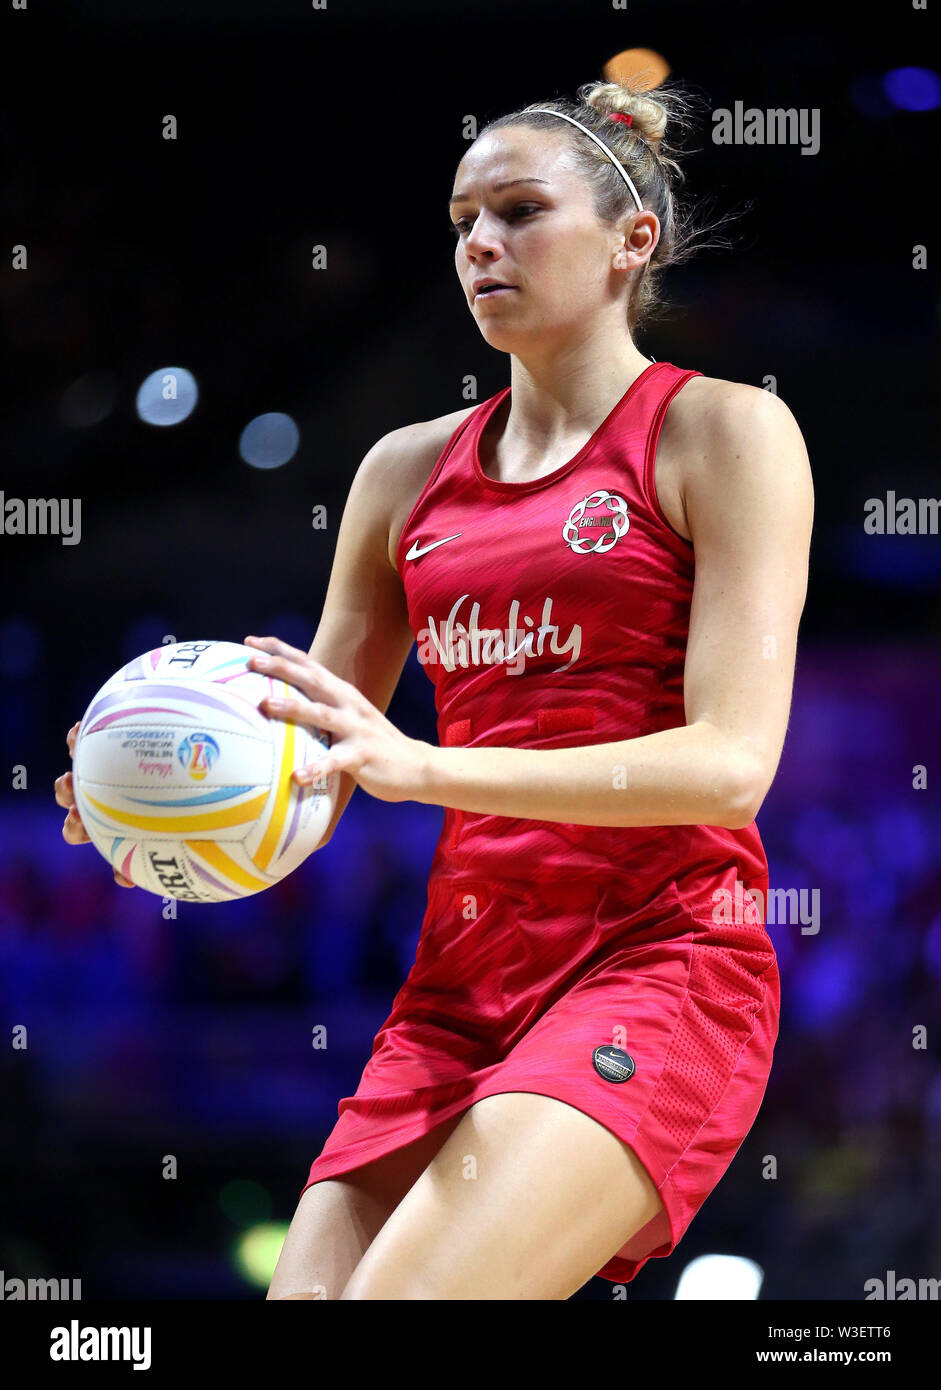 England's Joanne Harten warms up ahead of the match during the Netball World Cup match at the M&S Bank Arena, Liverpool. - Stock Image